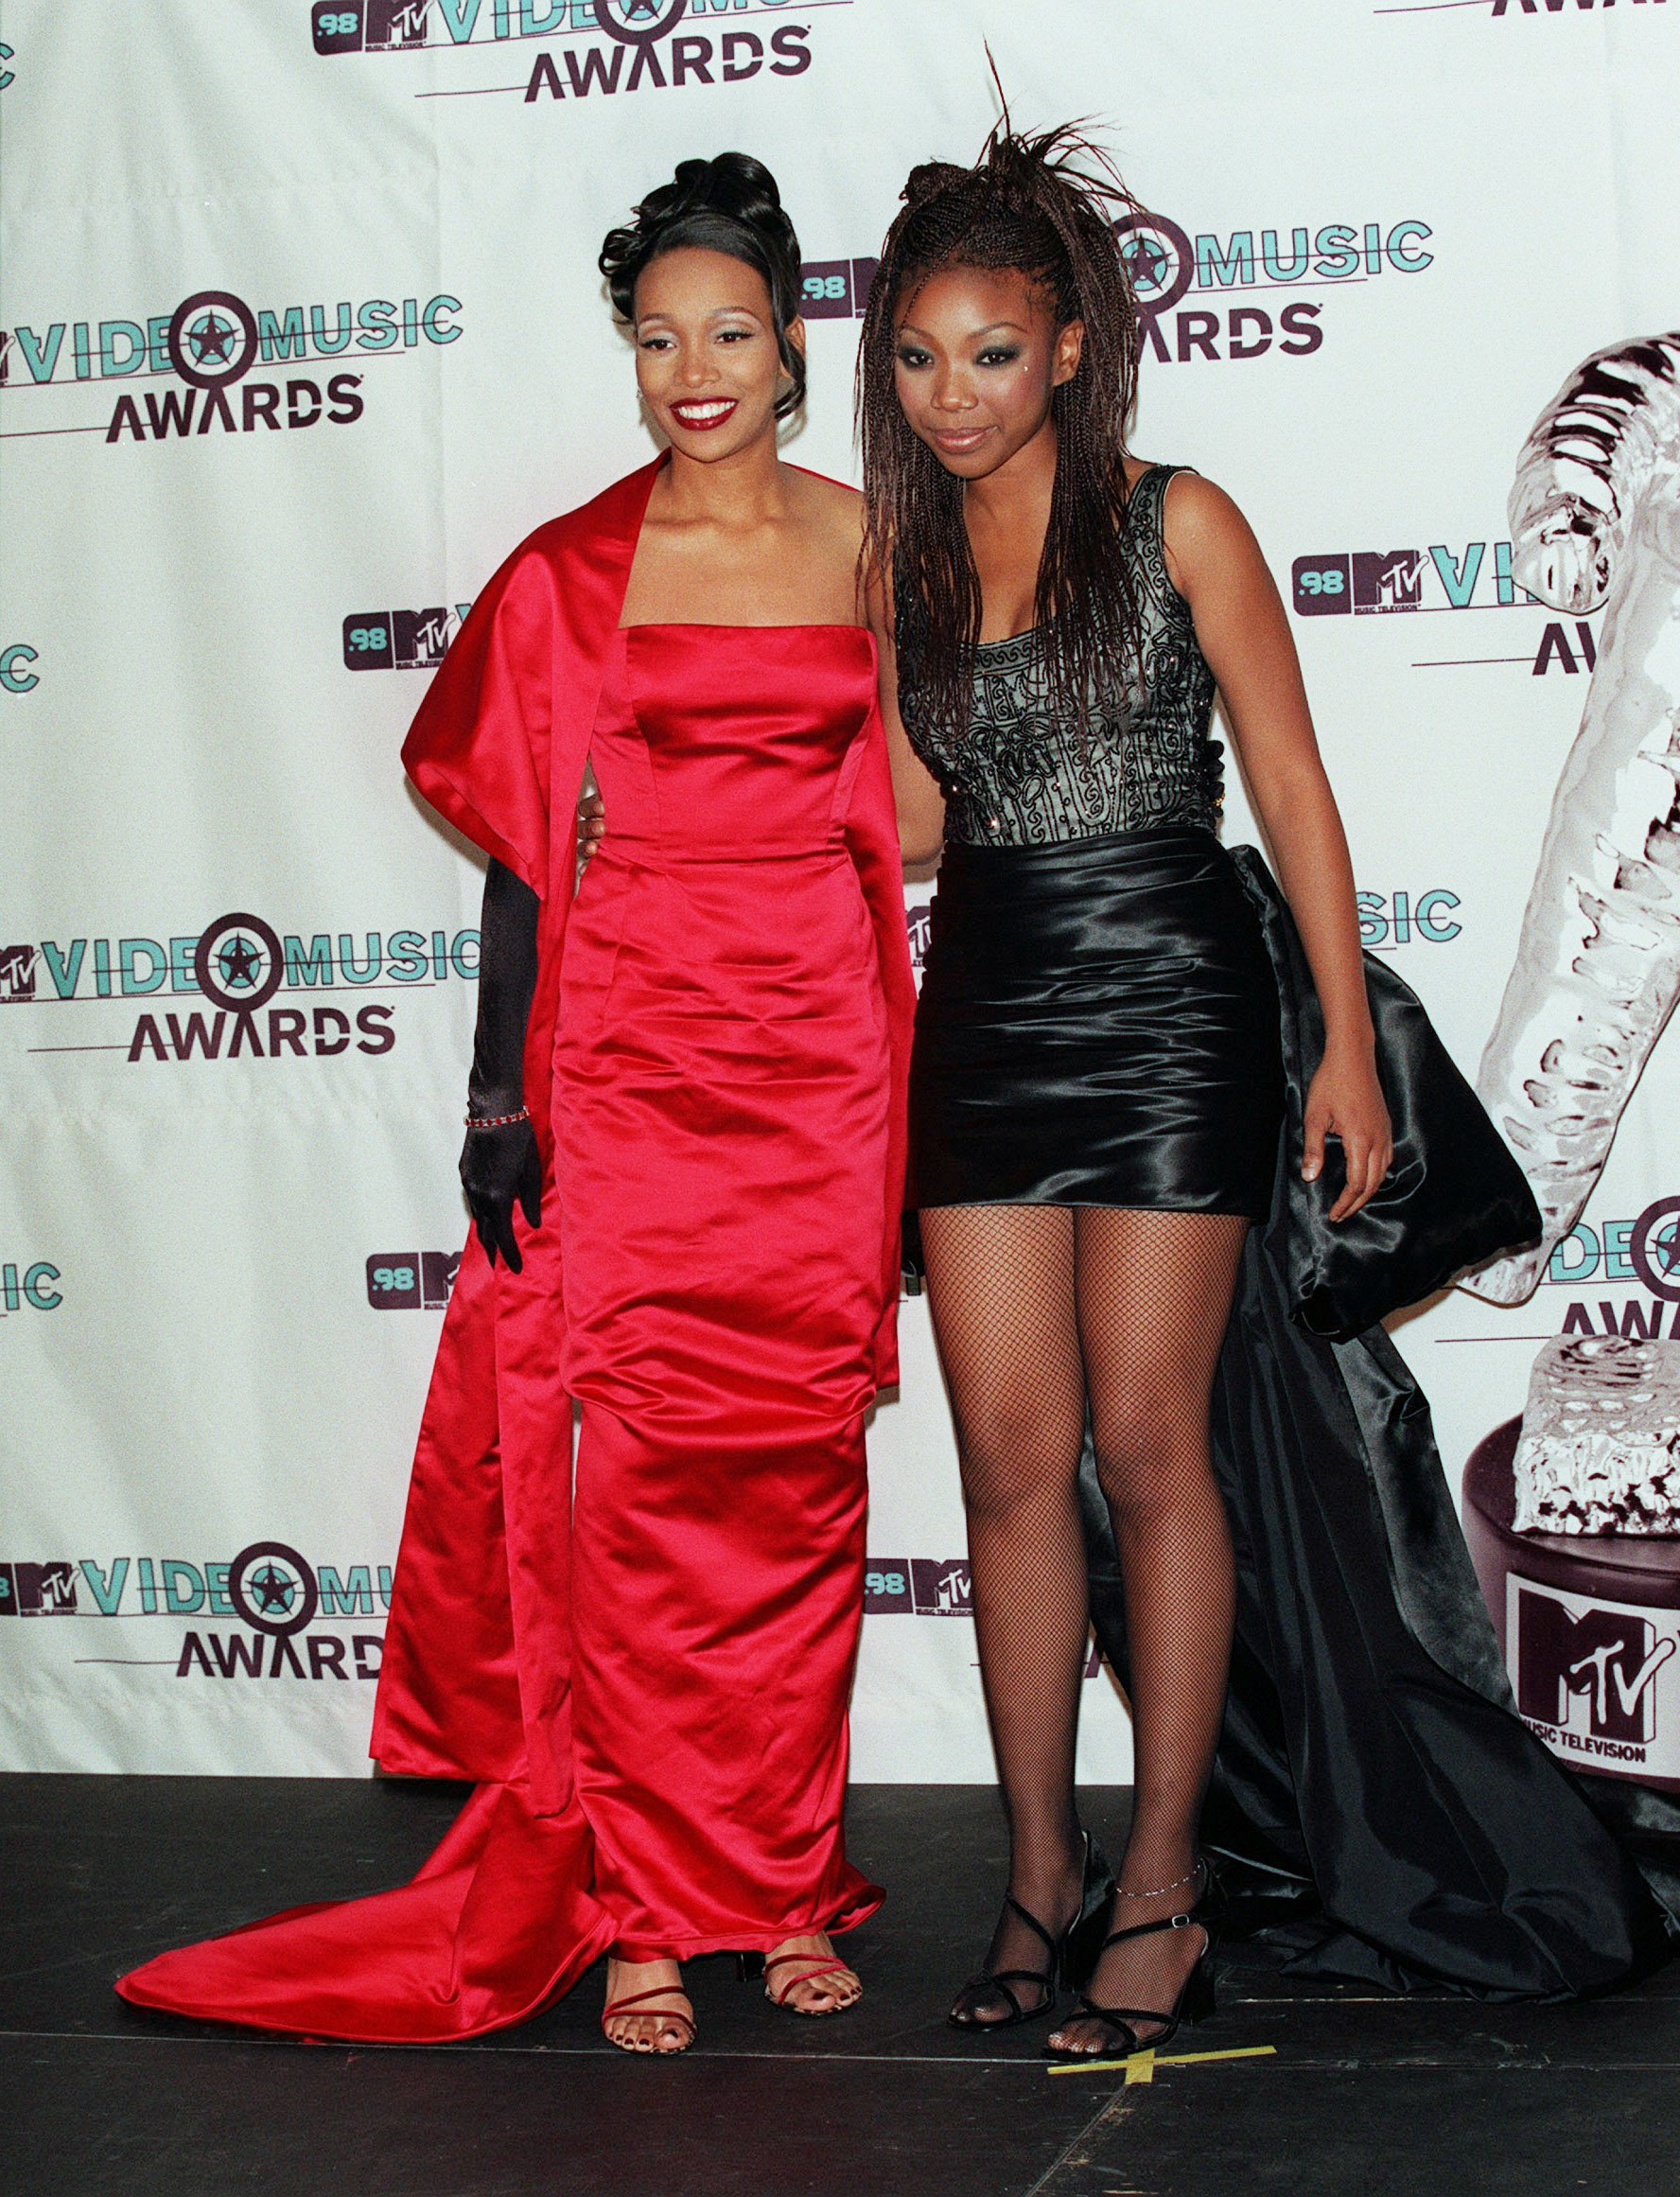 """Brandy & Monica, singers of """"The Boy Is Mine"""" at the M.T.V. Video Music Awards in L.A. in 1998 